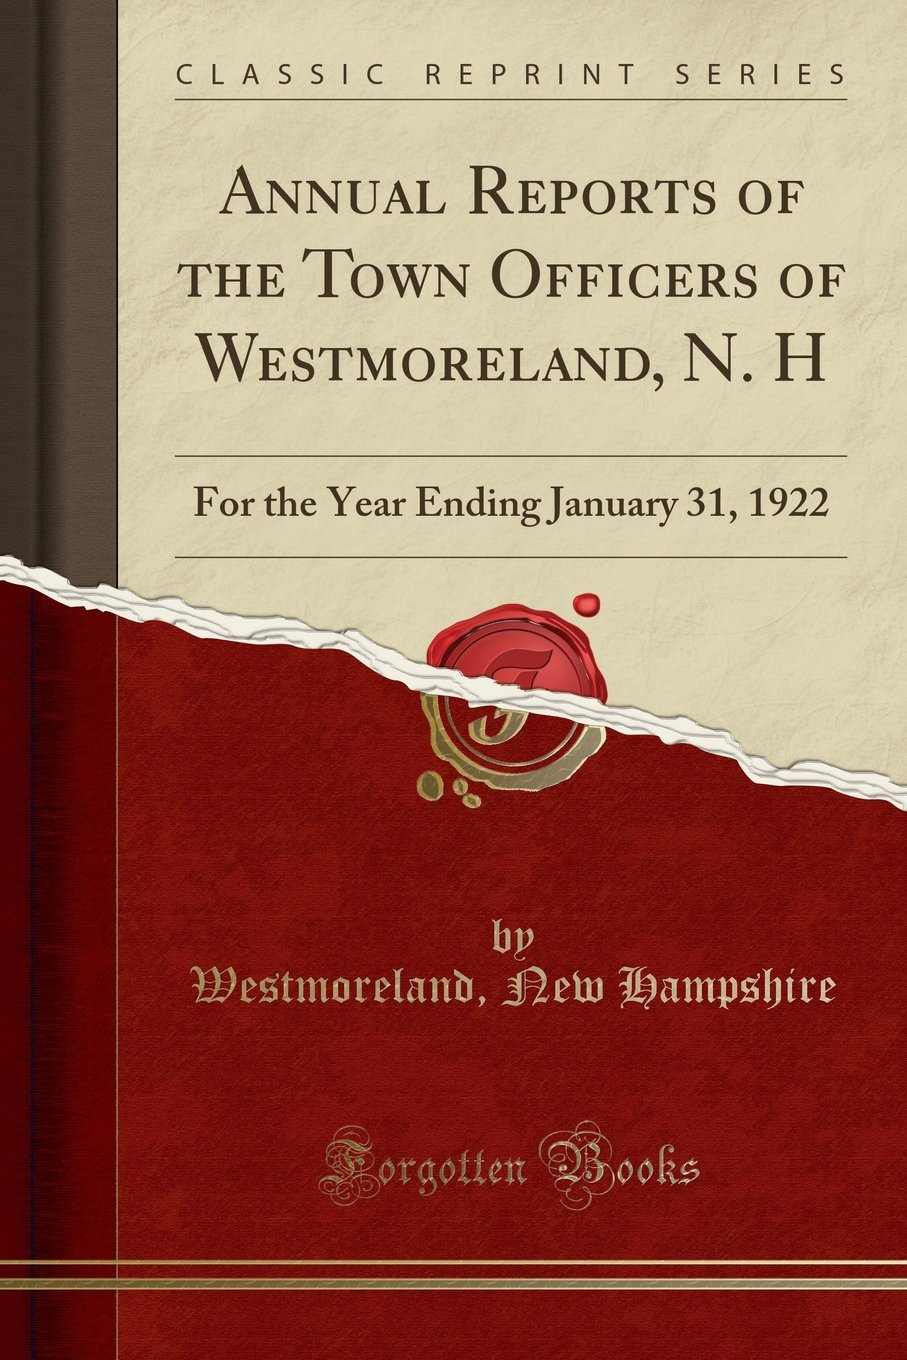 Annual Reports of the Town Officers of Westmoreland, N. H: For the Year Ending January 31, 1922 (Classic Reprint) pdf epub